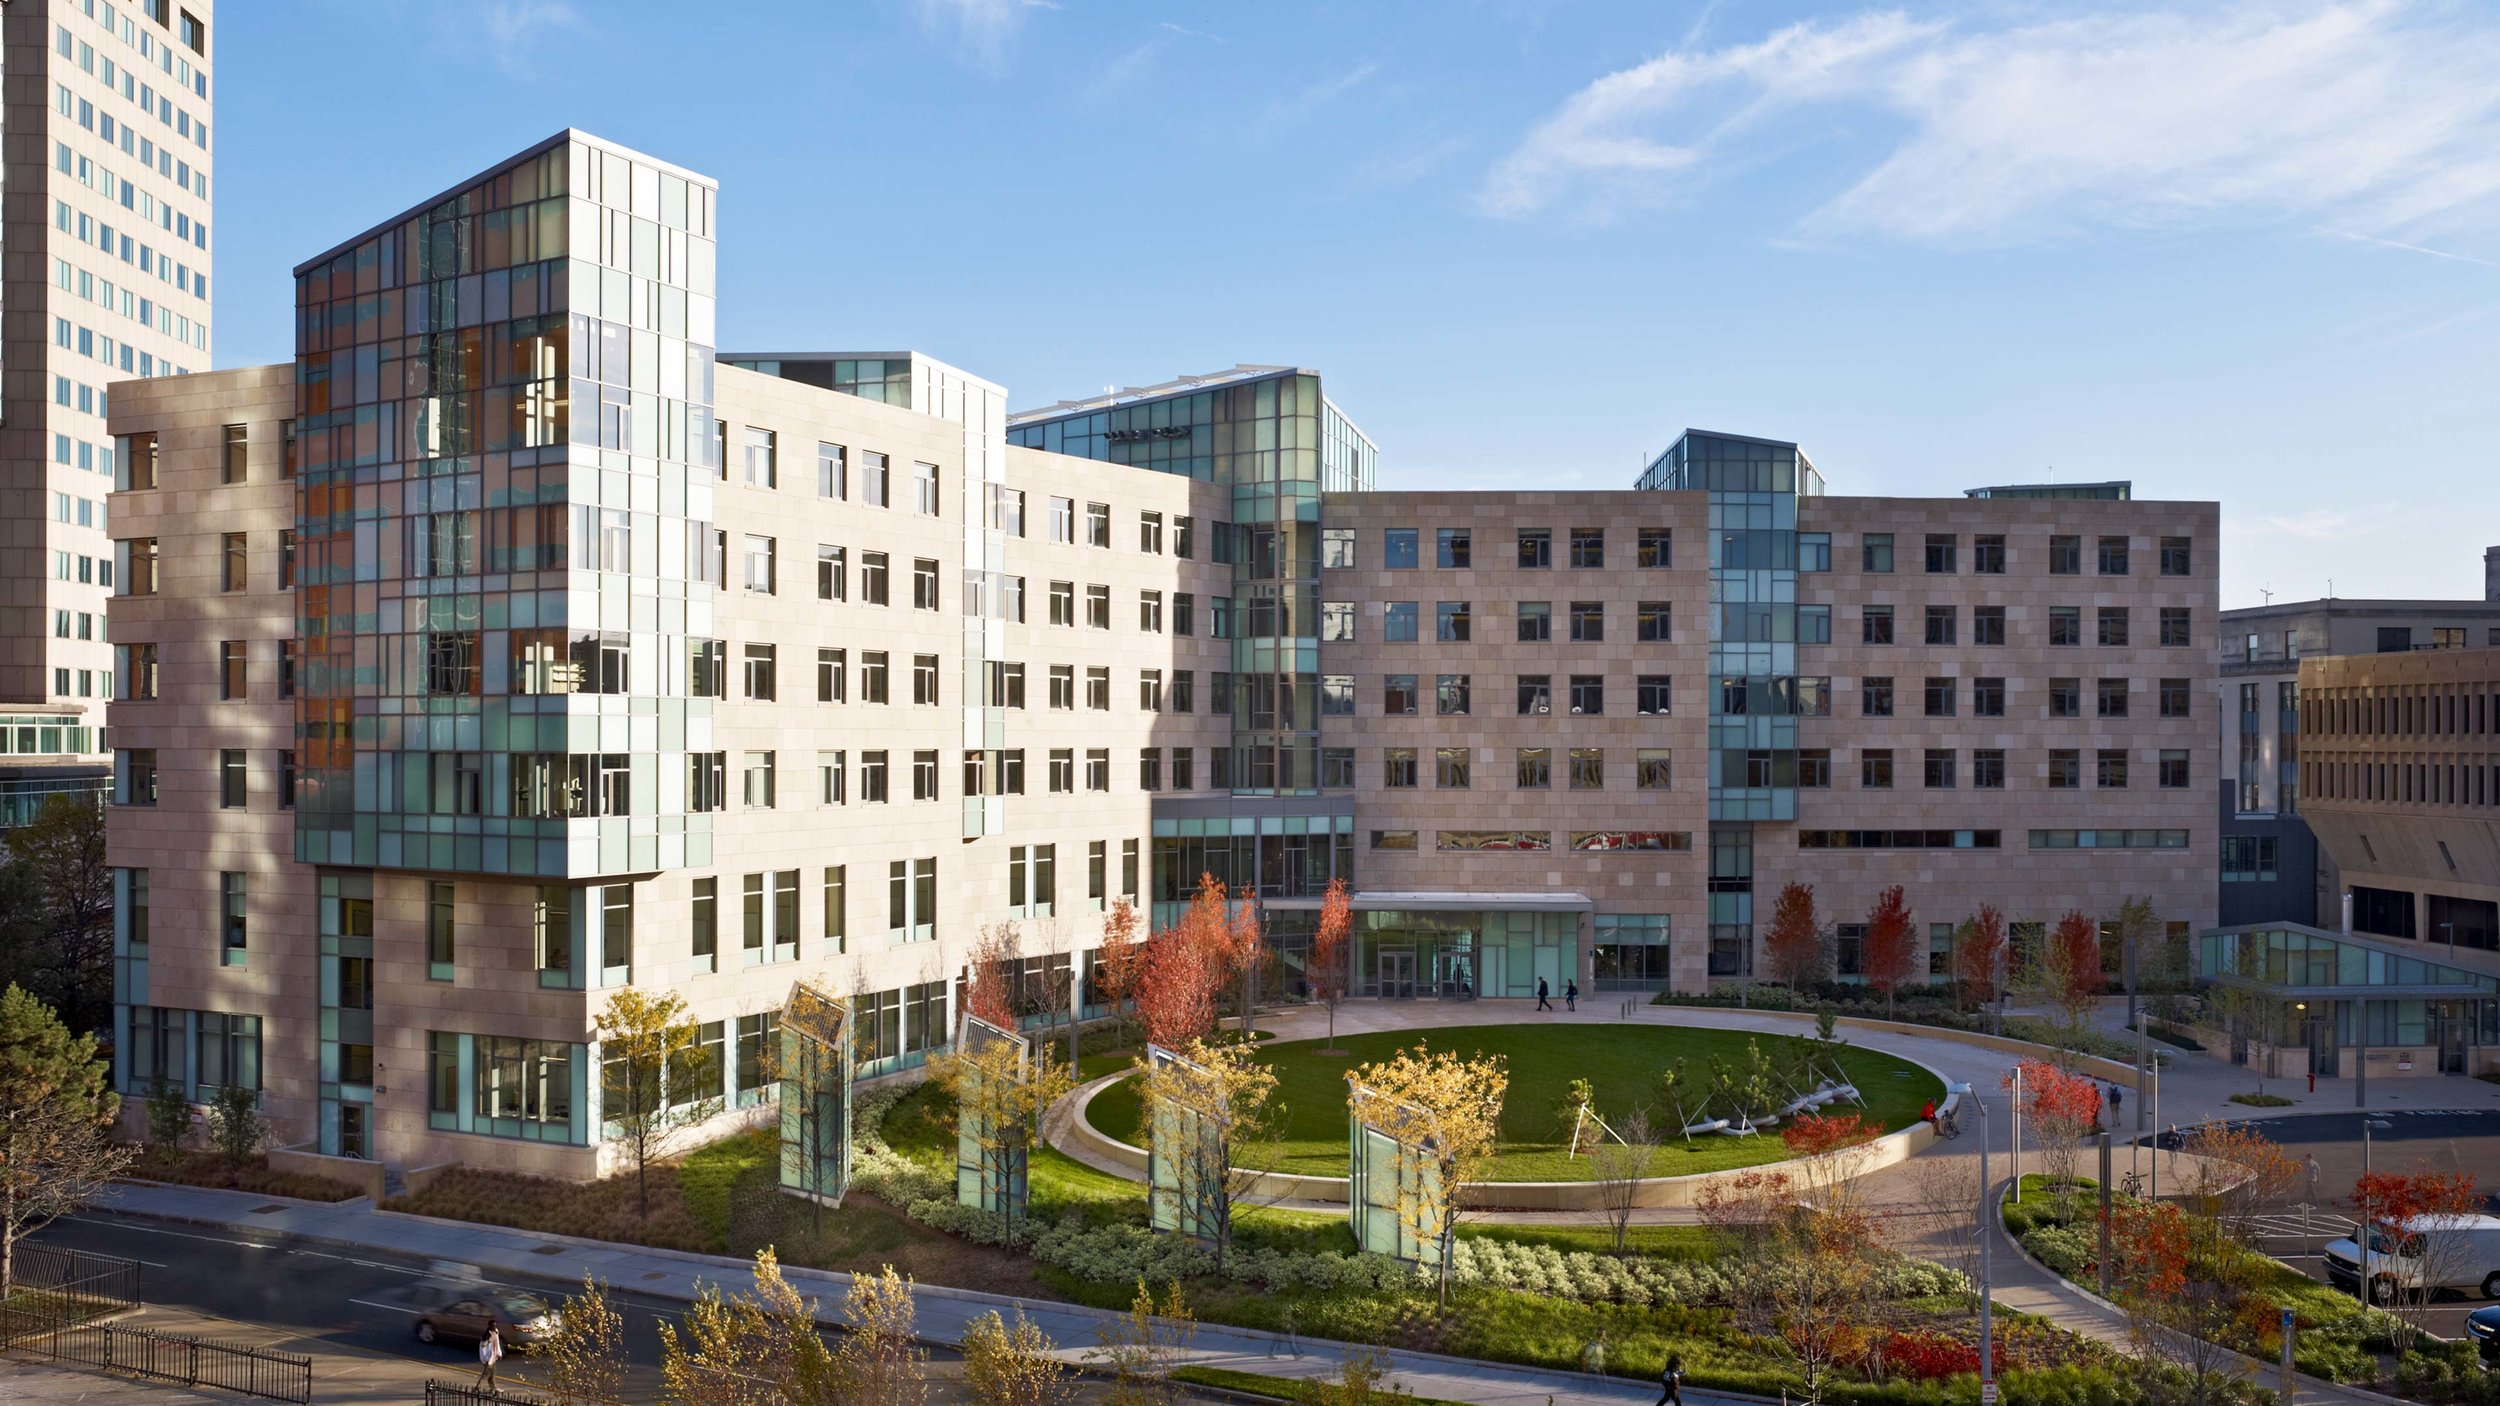 MIT Sloan School of Management, location of 15.783